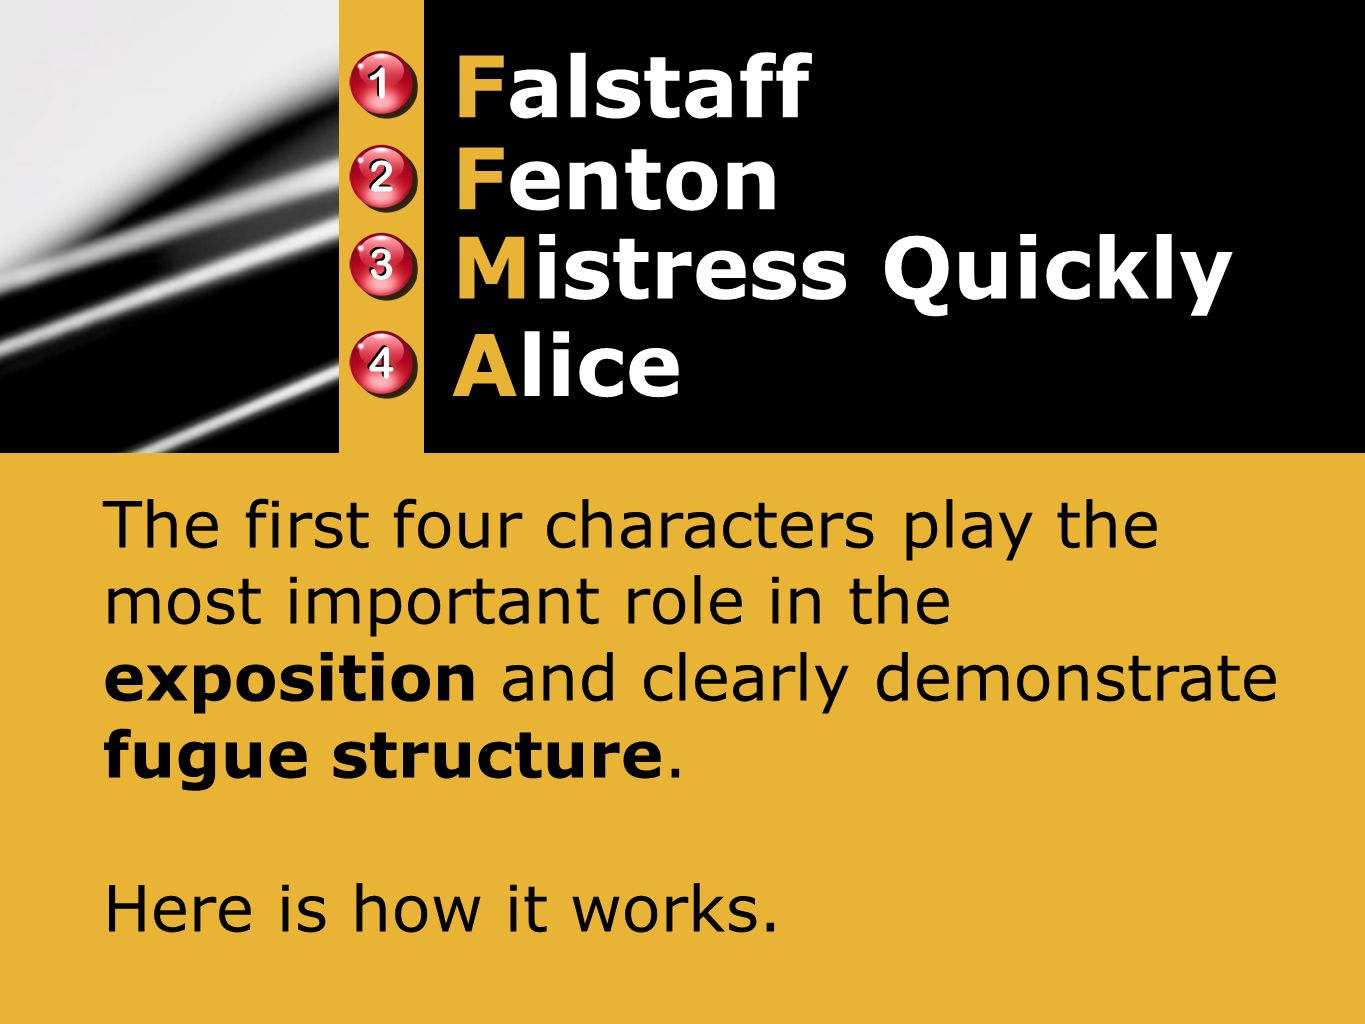 1 1 2 2 3 3 4 4 Falstaff Fenton Mistress Quickly Alice The first four characters play the most important role in the exposition and clearly demonstrat